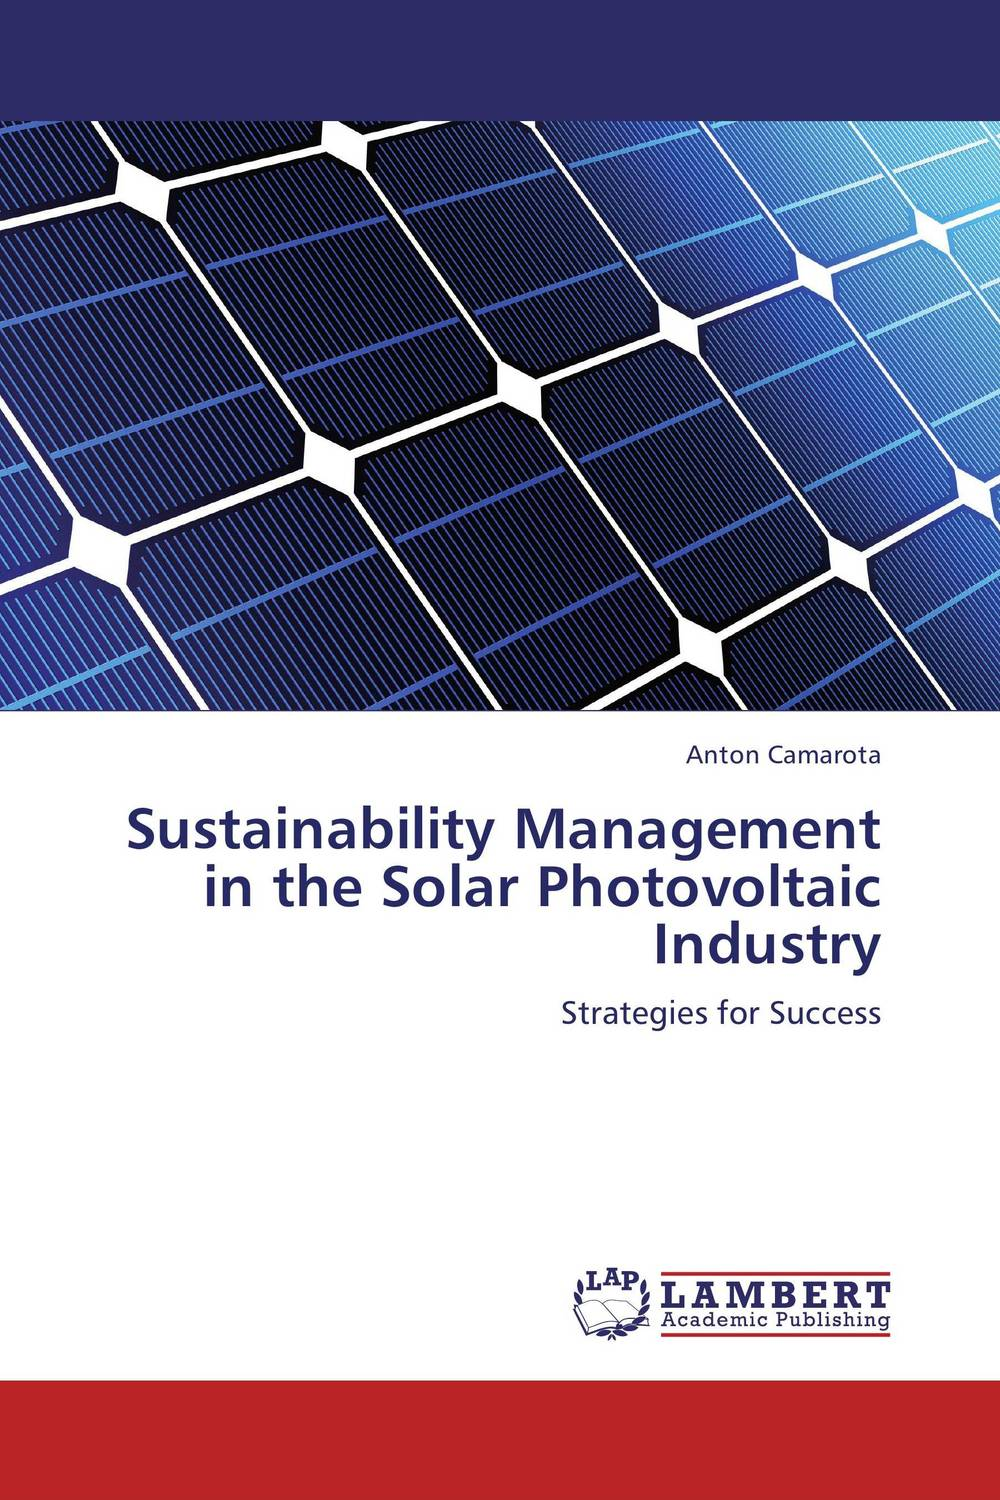 Sustainability Management in the Solar Photovoltaic Industry anton camarota sustainability management in the solar photovoltaic industry